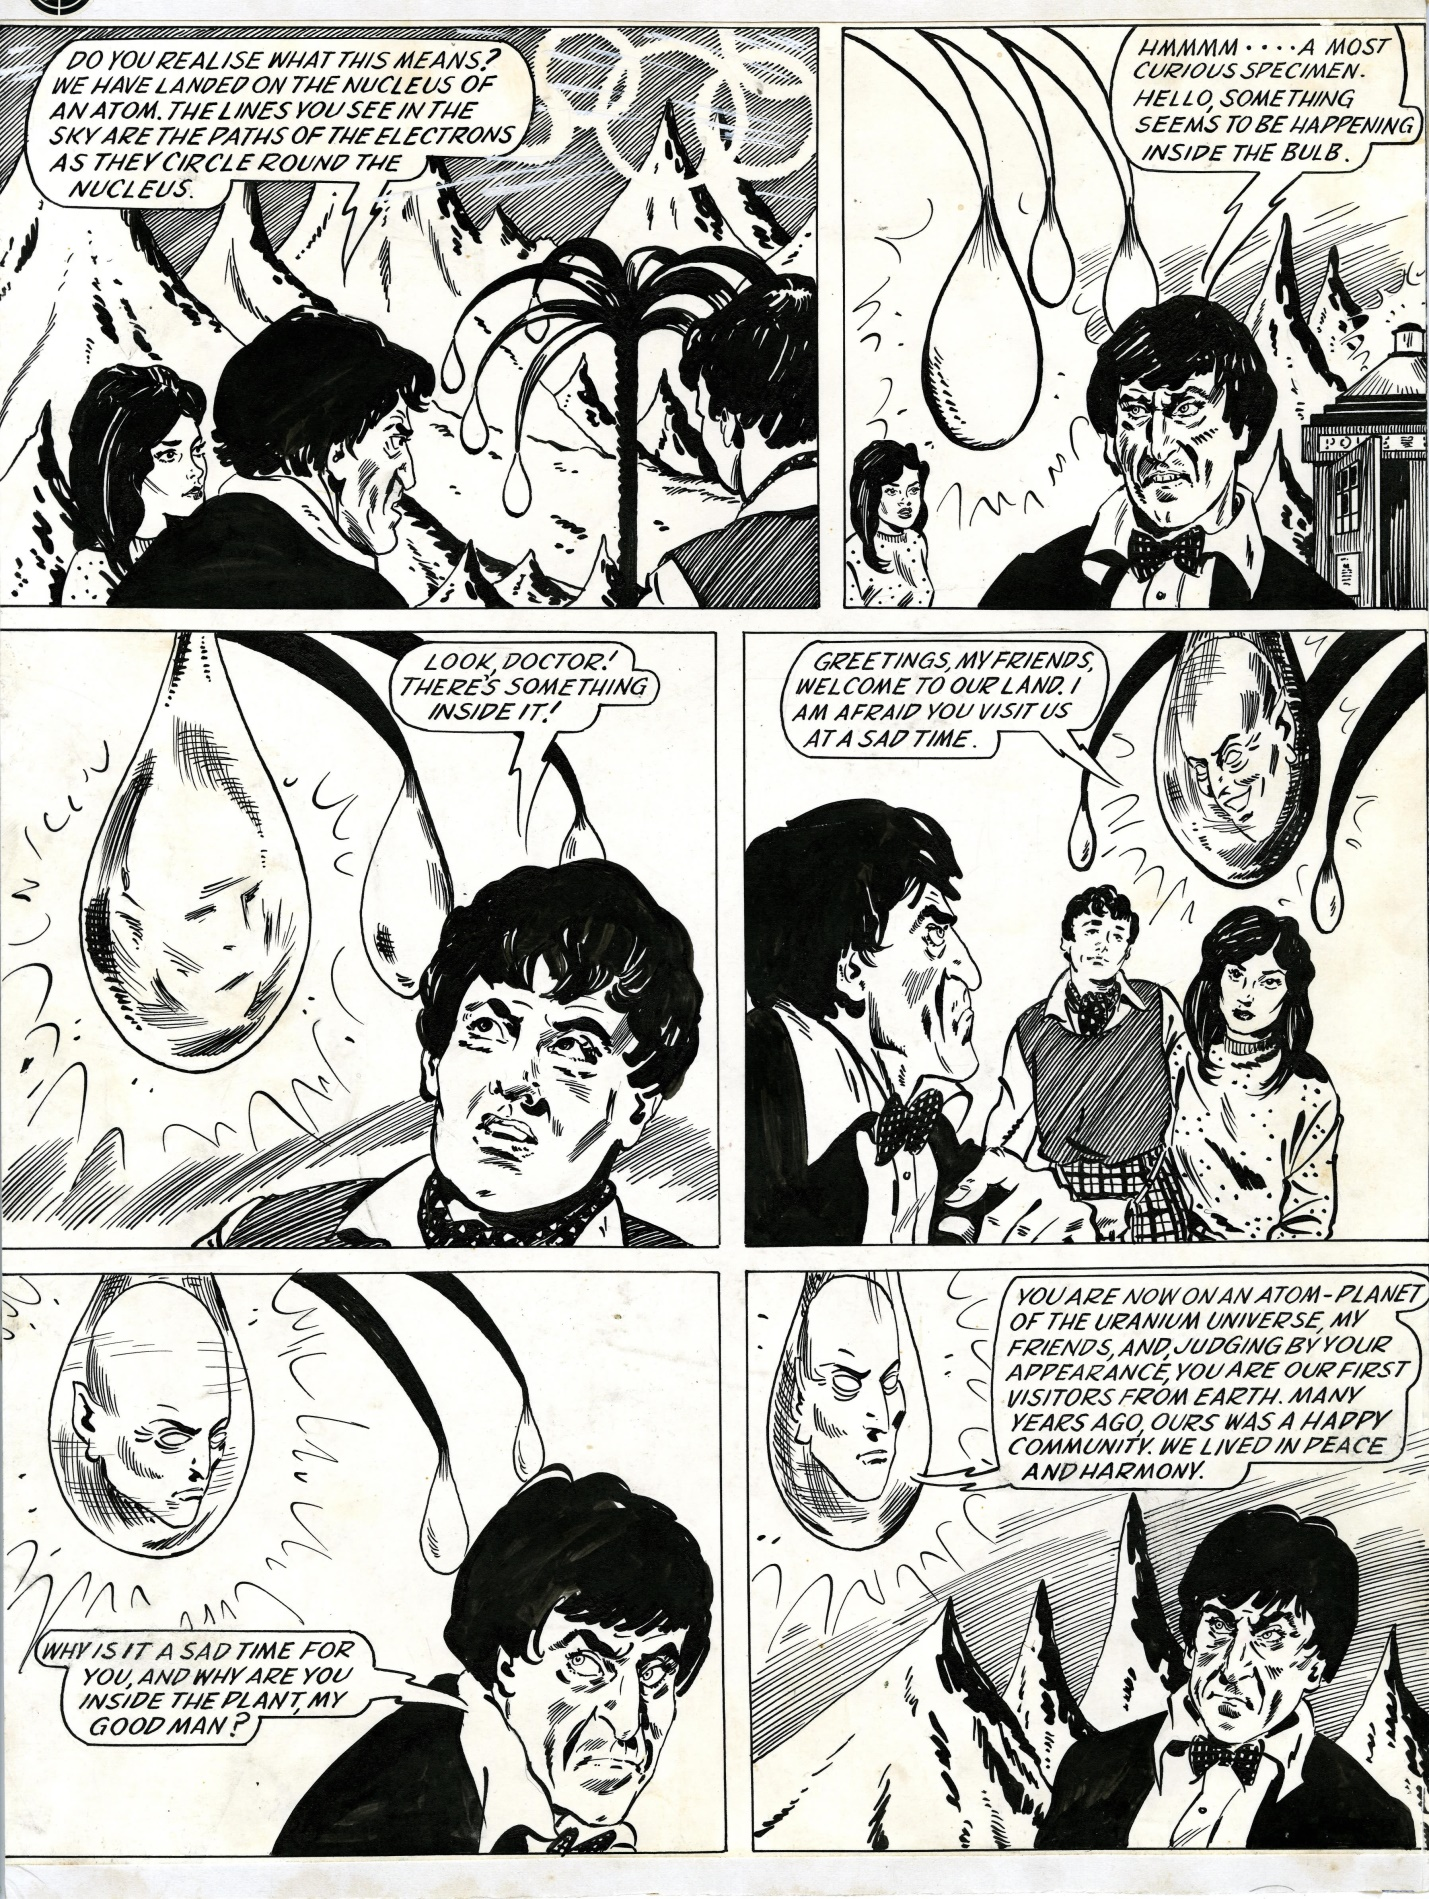 Original artwork for Atoms Infinite in The Dr. Who Annual 1968